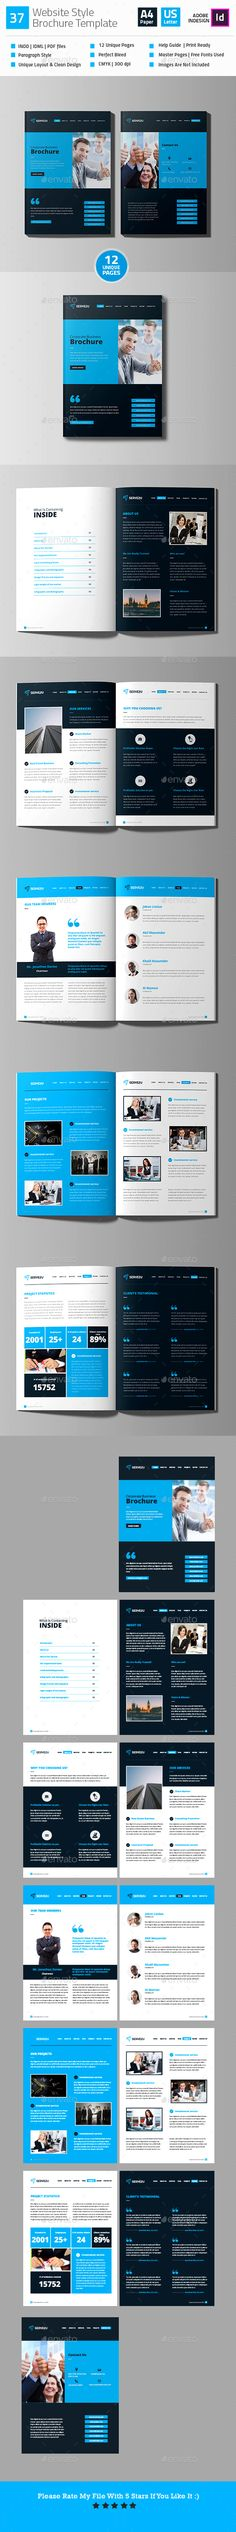 Web Style Brochure Template InDesign INDD - A4 & US Letter Size